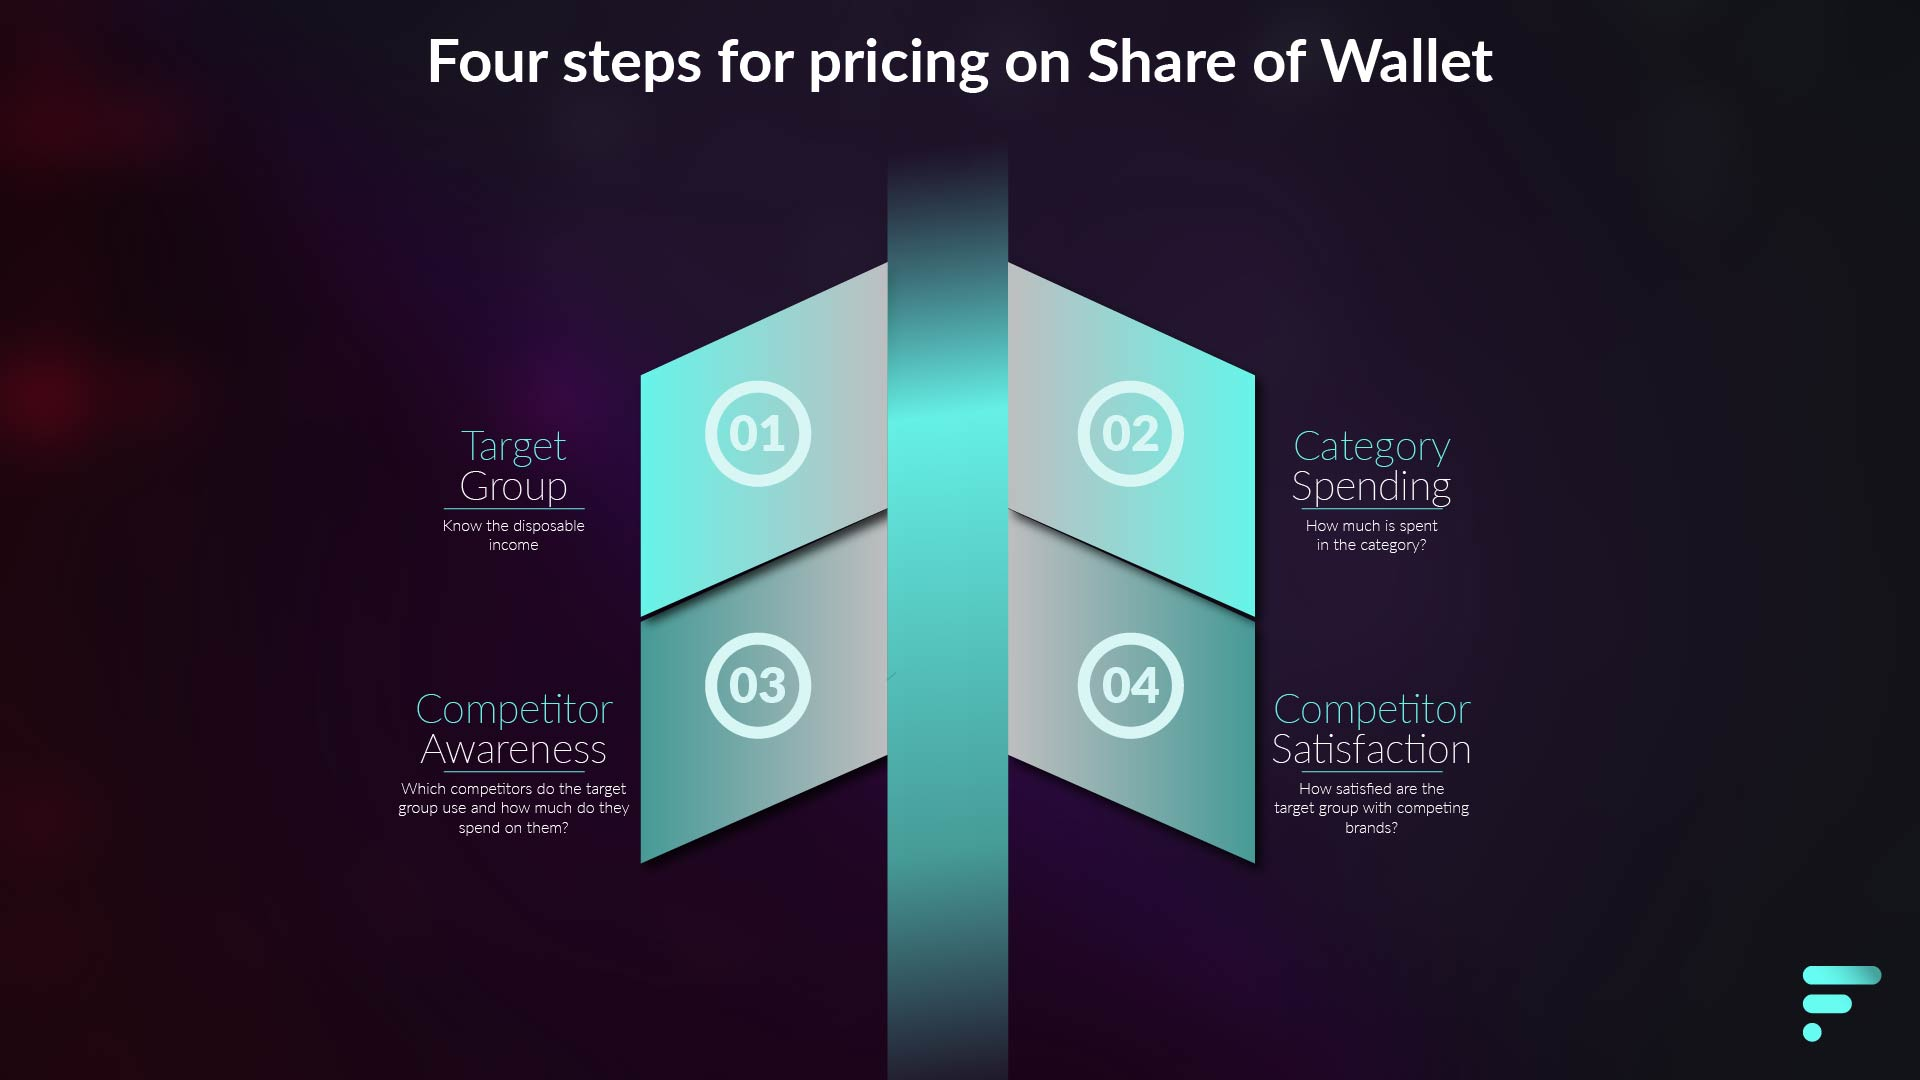 Four steps for pricing on Share of Wallet